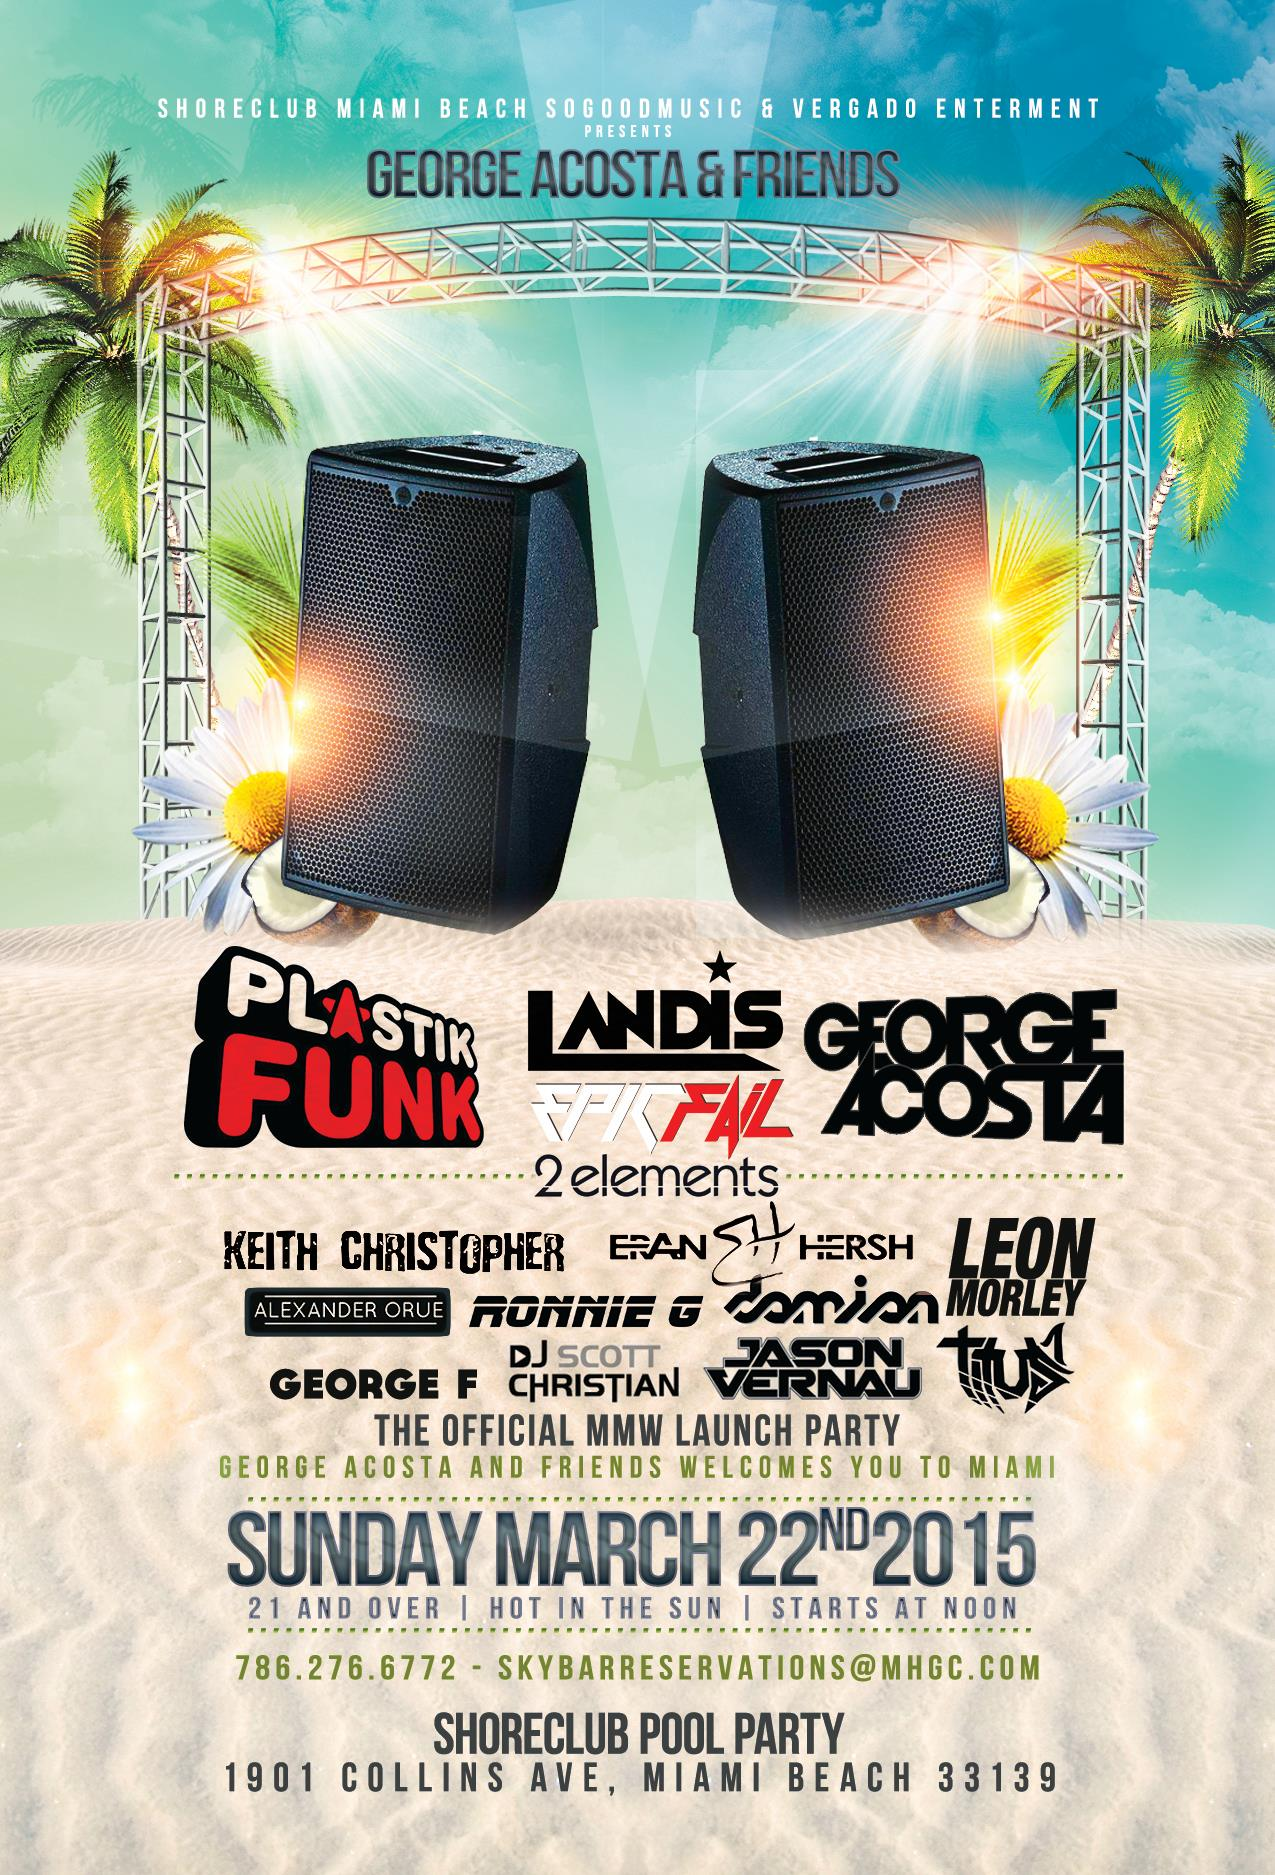 George Acosta & Friends WMC Pool Party